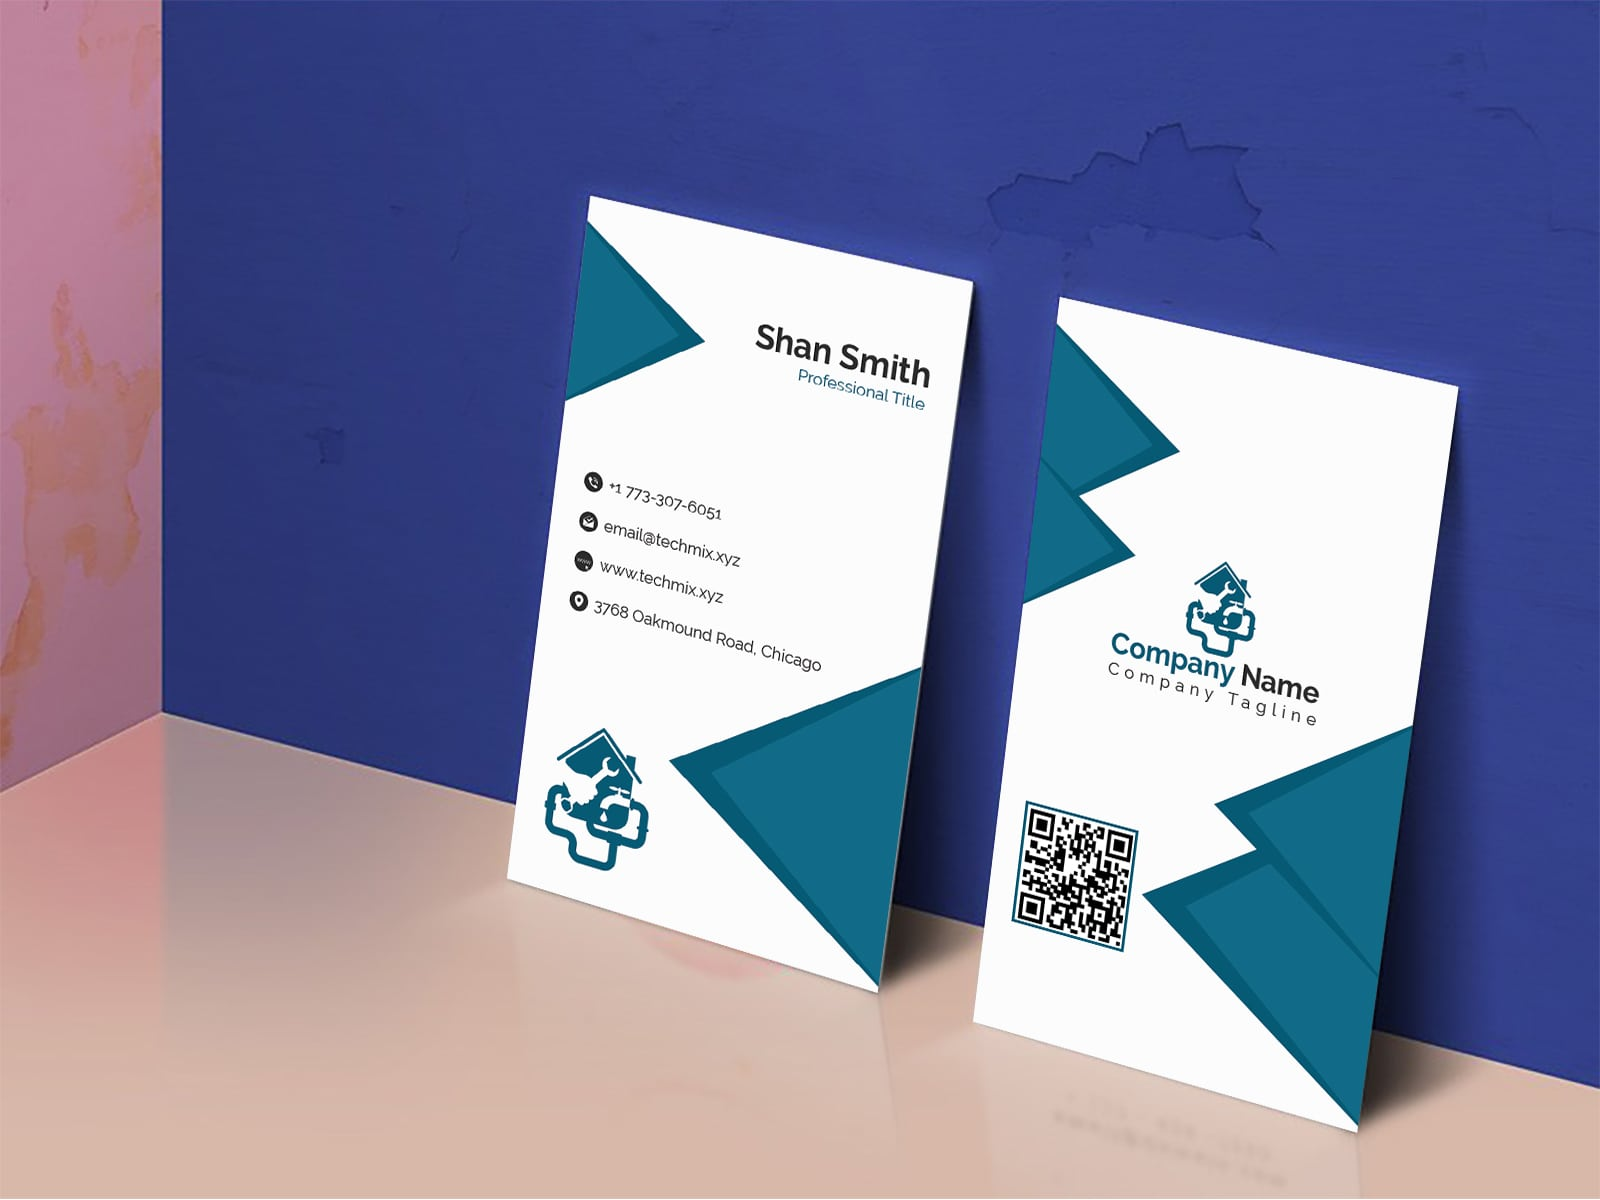 Professional Plumber Business Card Template